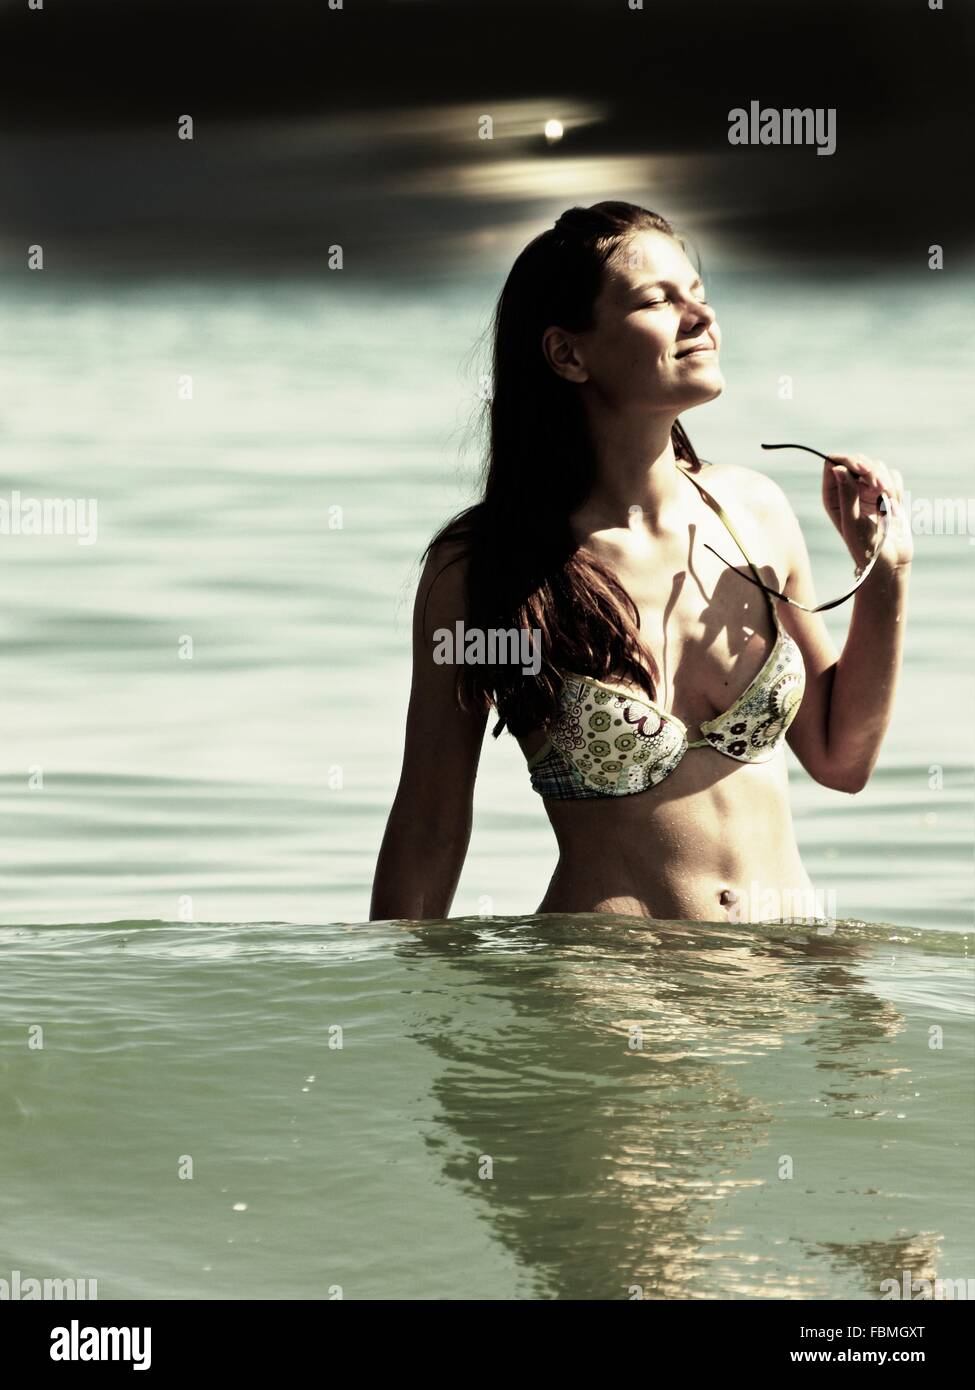 Bikini Woman In Sea Stock Photo